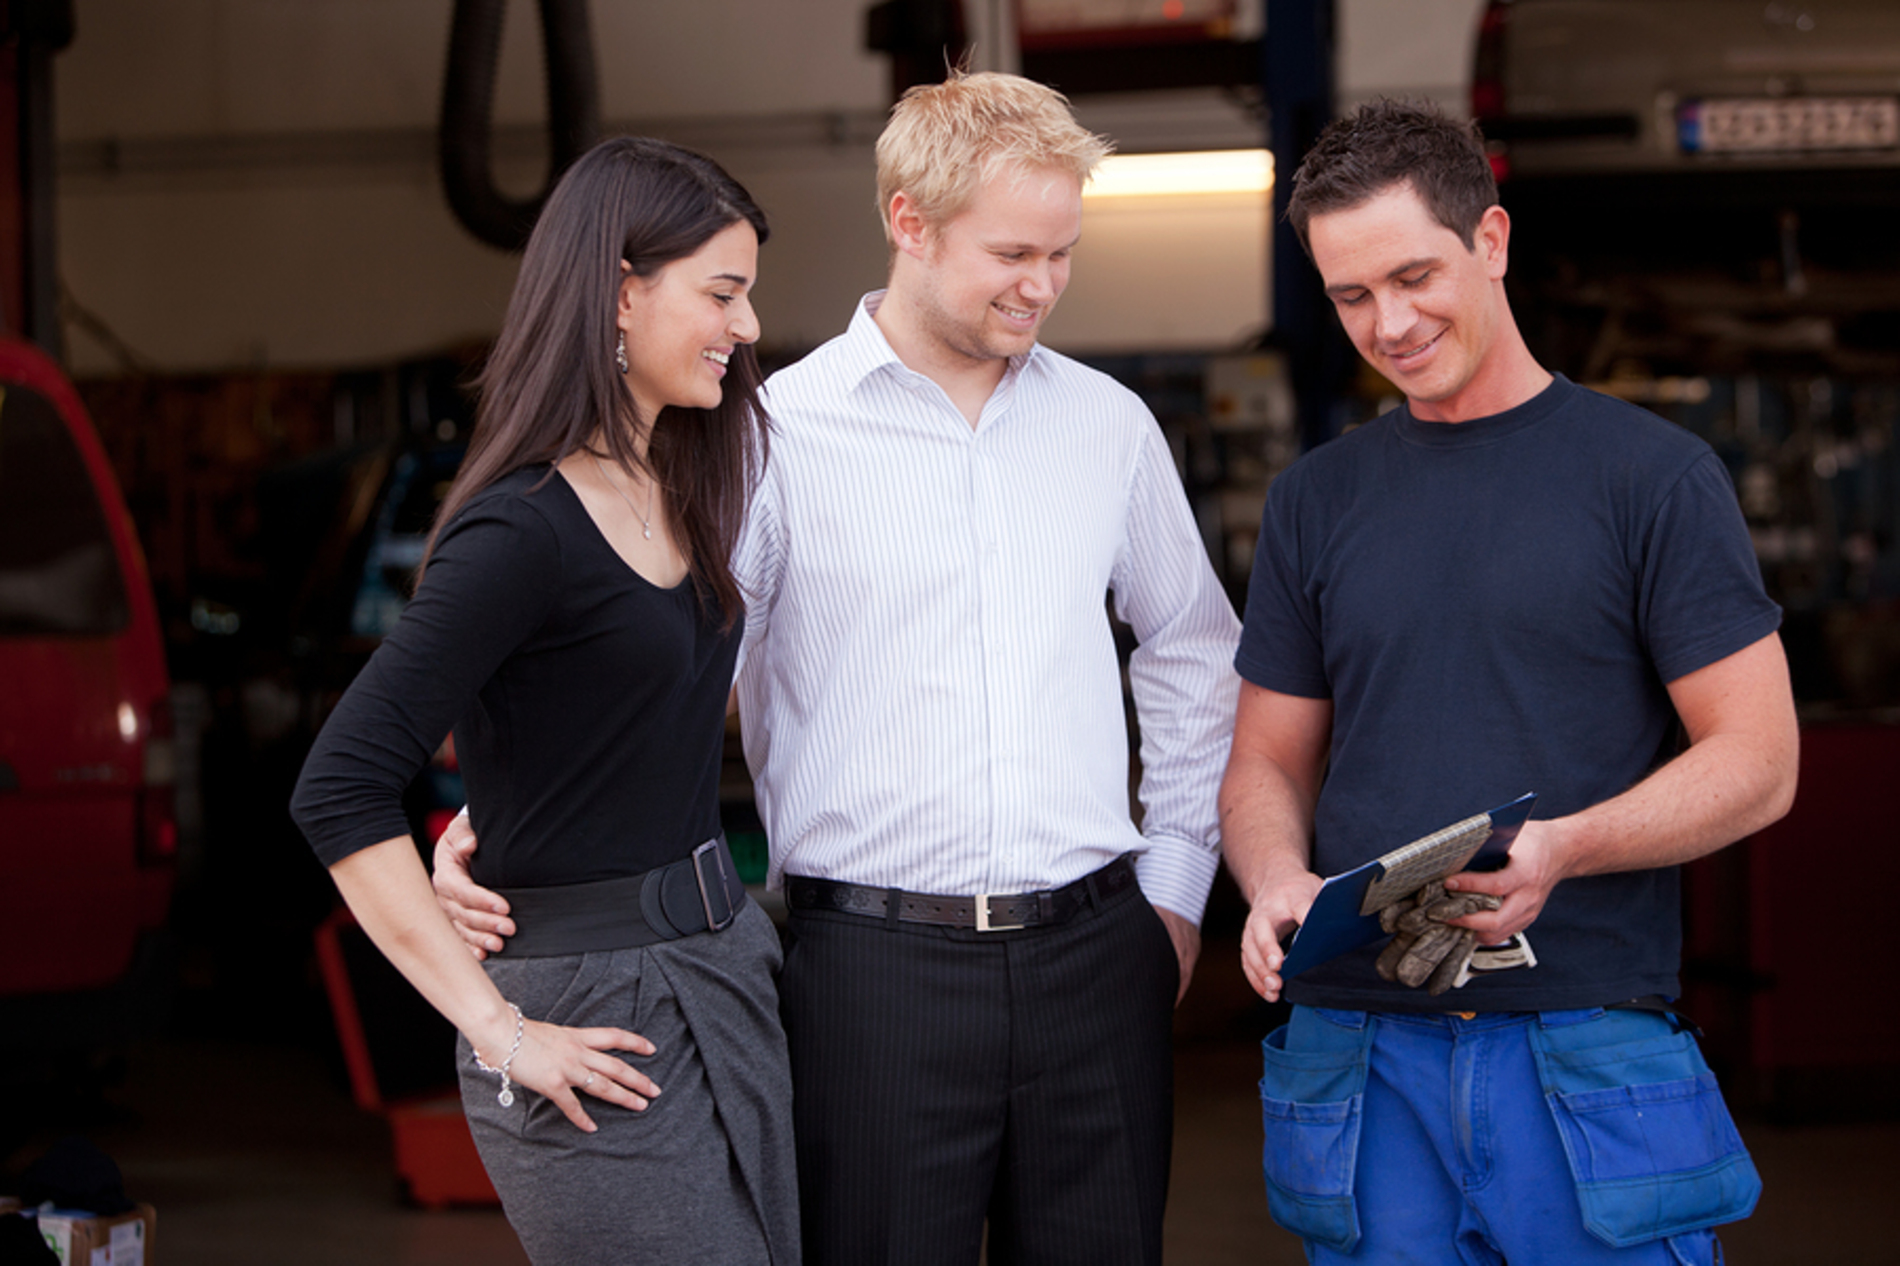 Happy customers speaking with a mechanic.